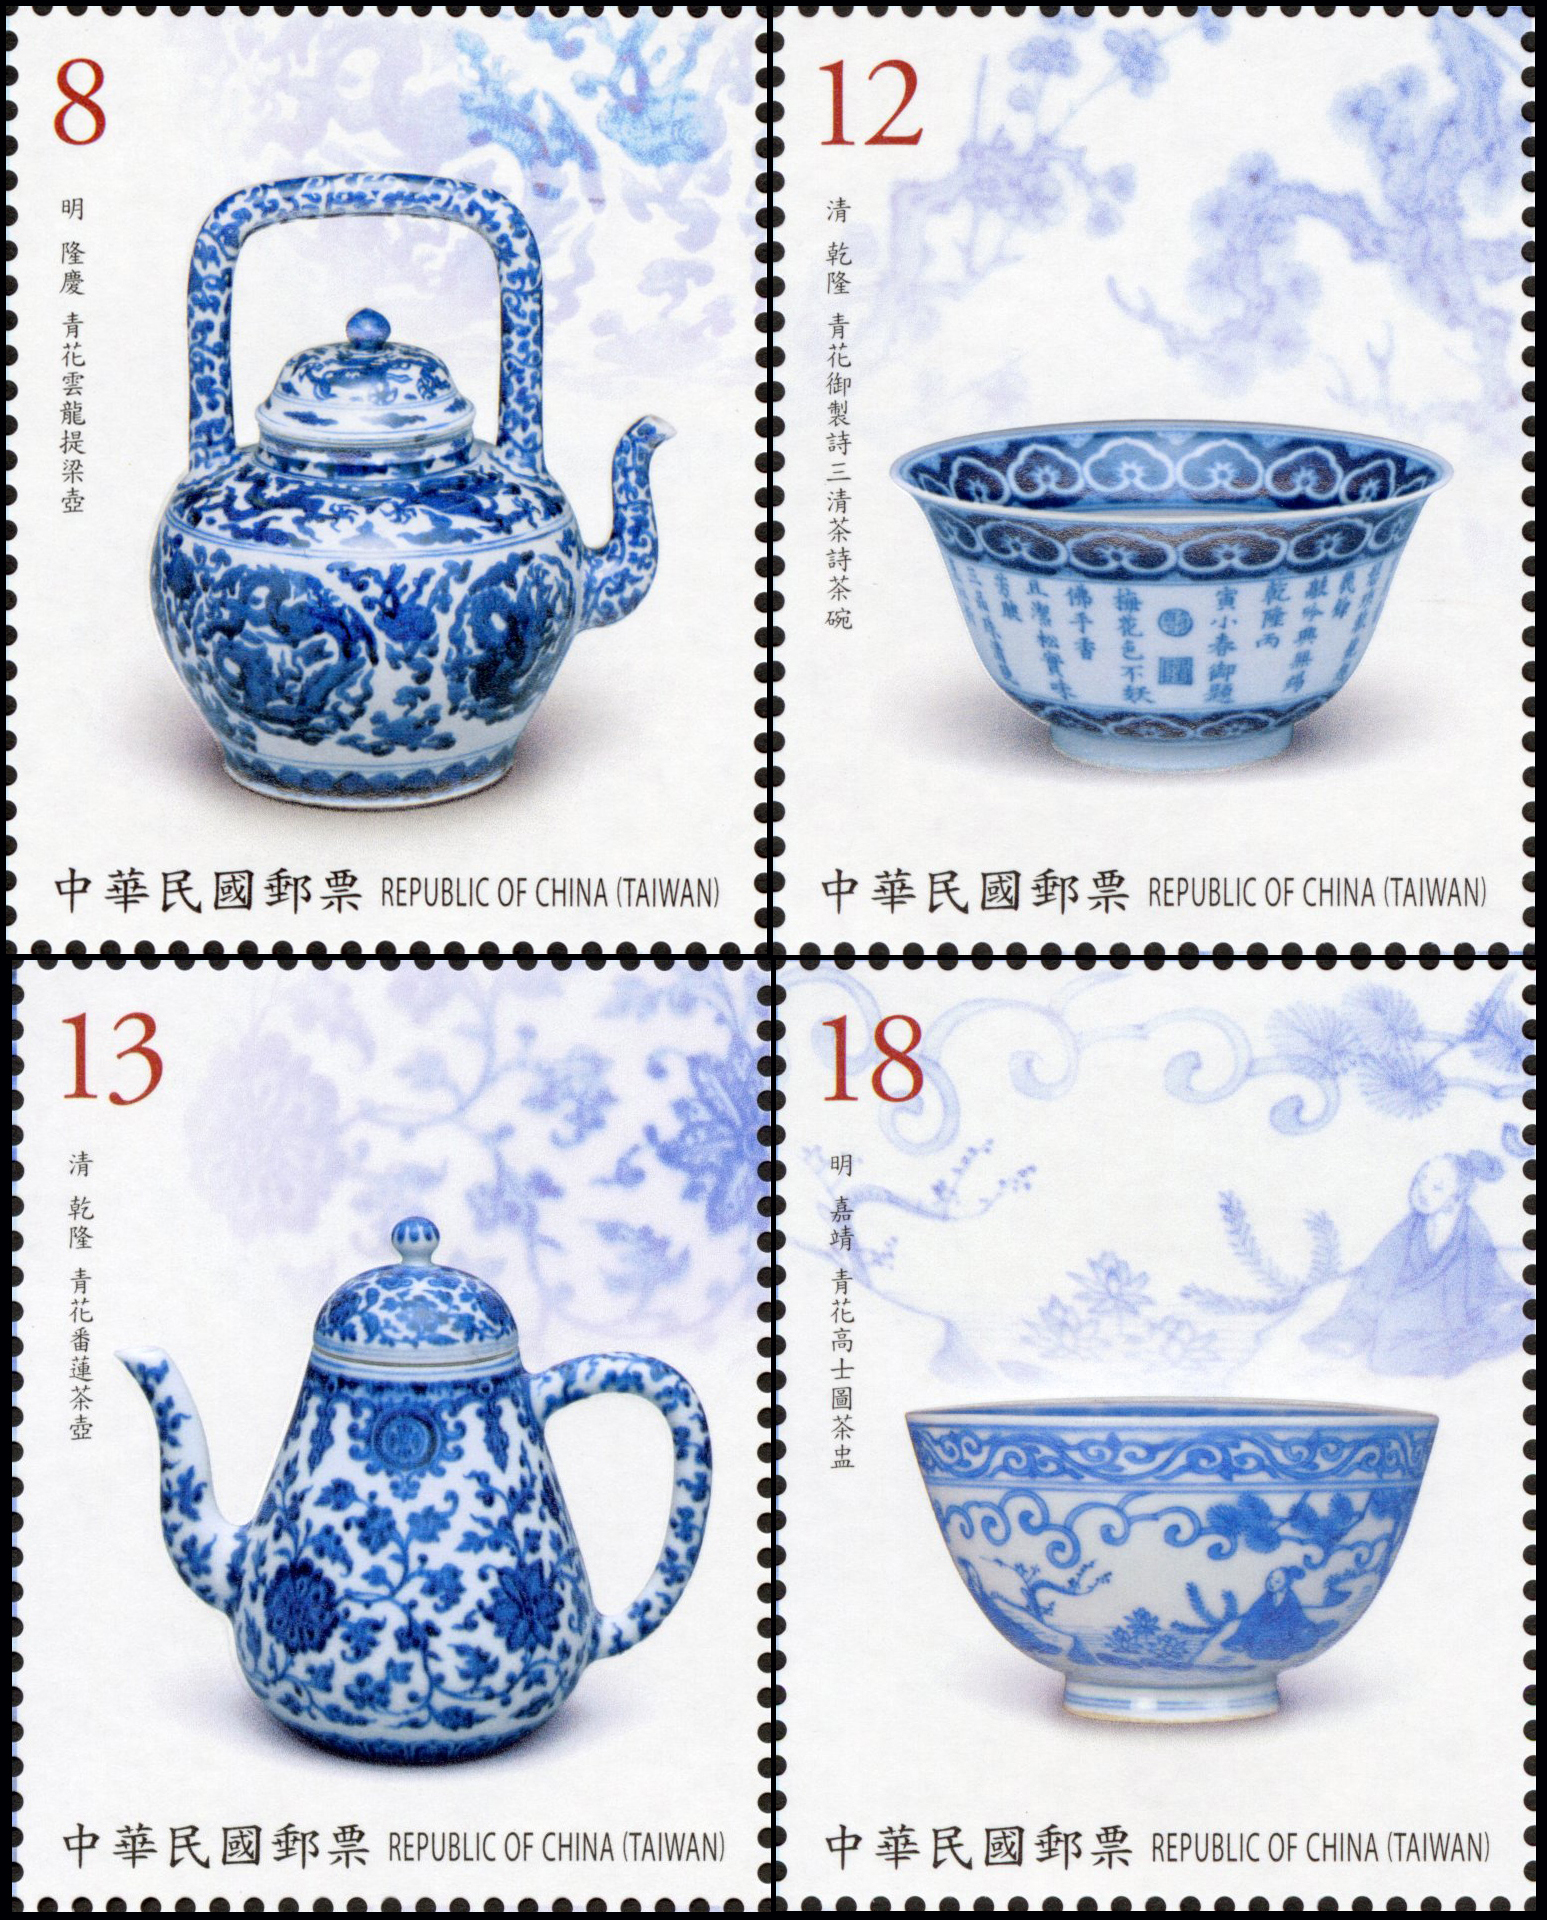 Ancient Chinese Art Treasures Postage Stamps — Blue and White Porcelain (Issue of 2019)